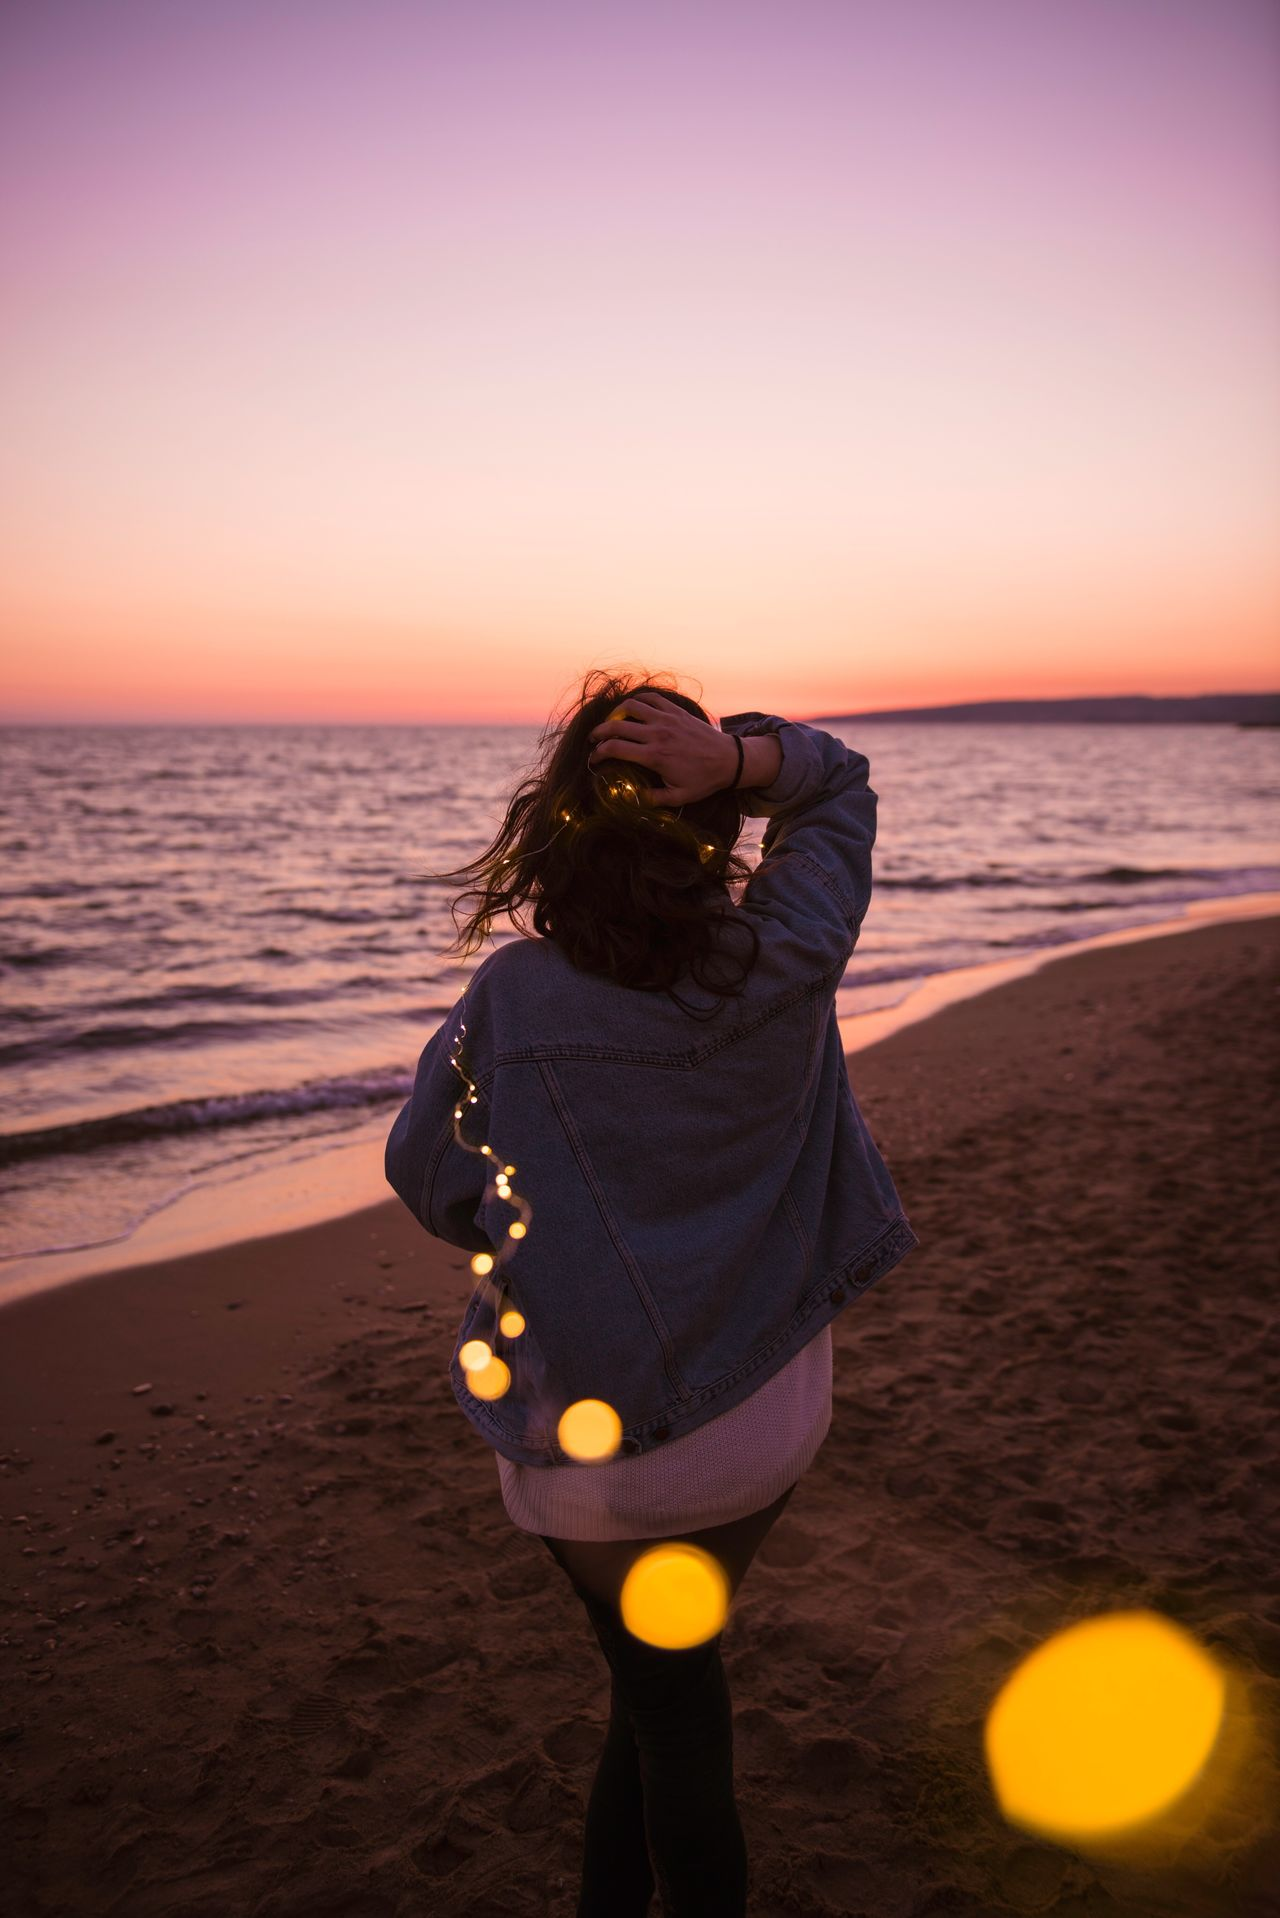 Long Goodbye Sea Sunset Beach One Person Horizon Over Water Holding Camera - Photographic Equipment Outdoors Clear Sky Adult People Water One Woman Only Adults Only Nature Sea And Sky Young Adult Only Women Day